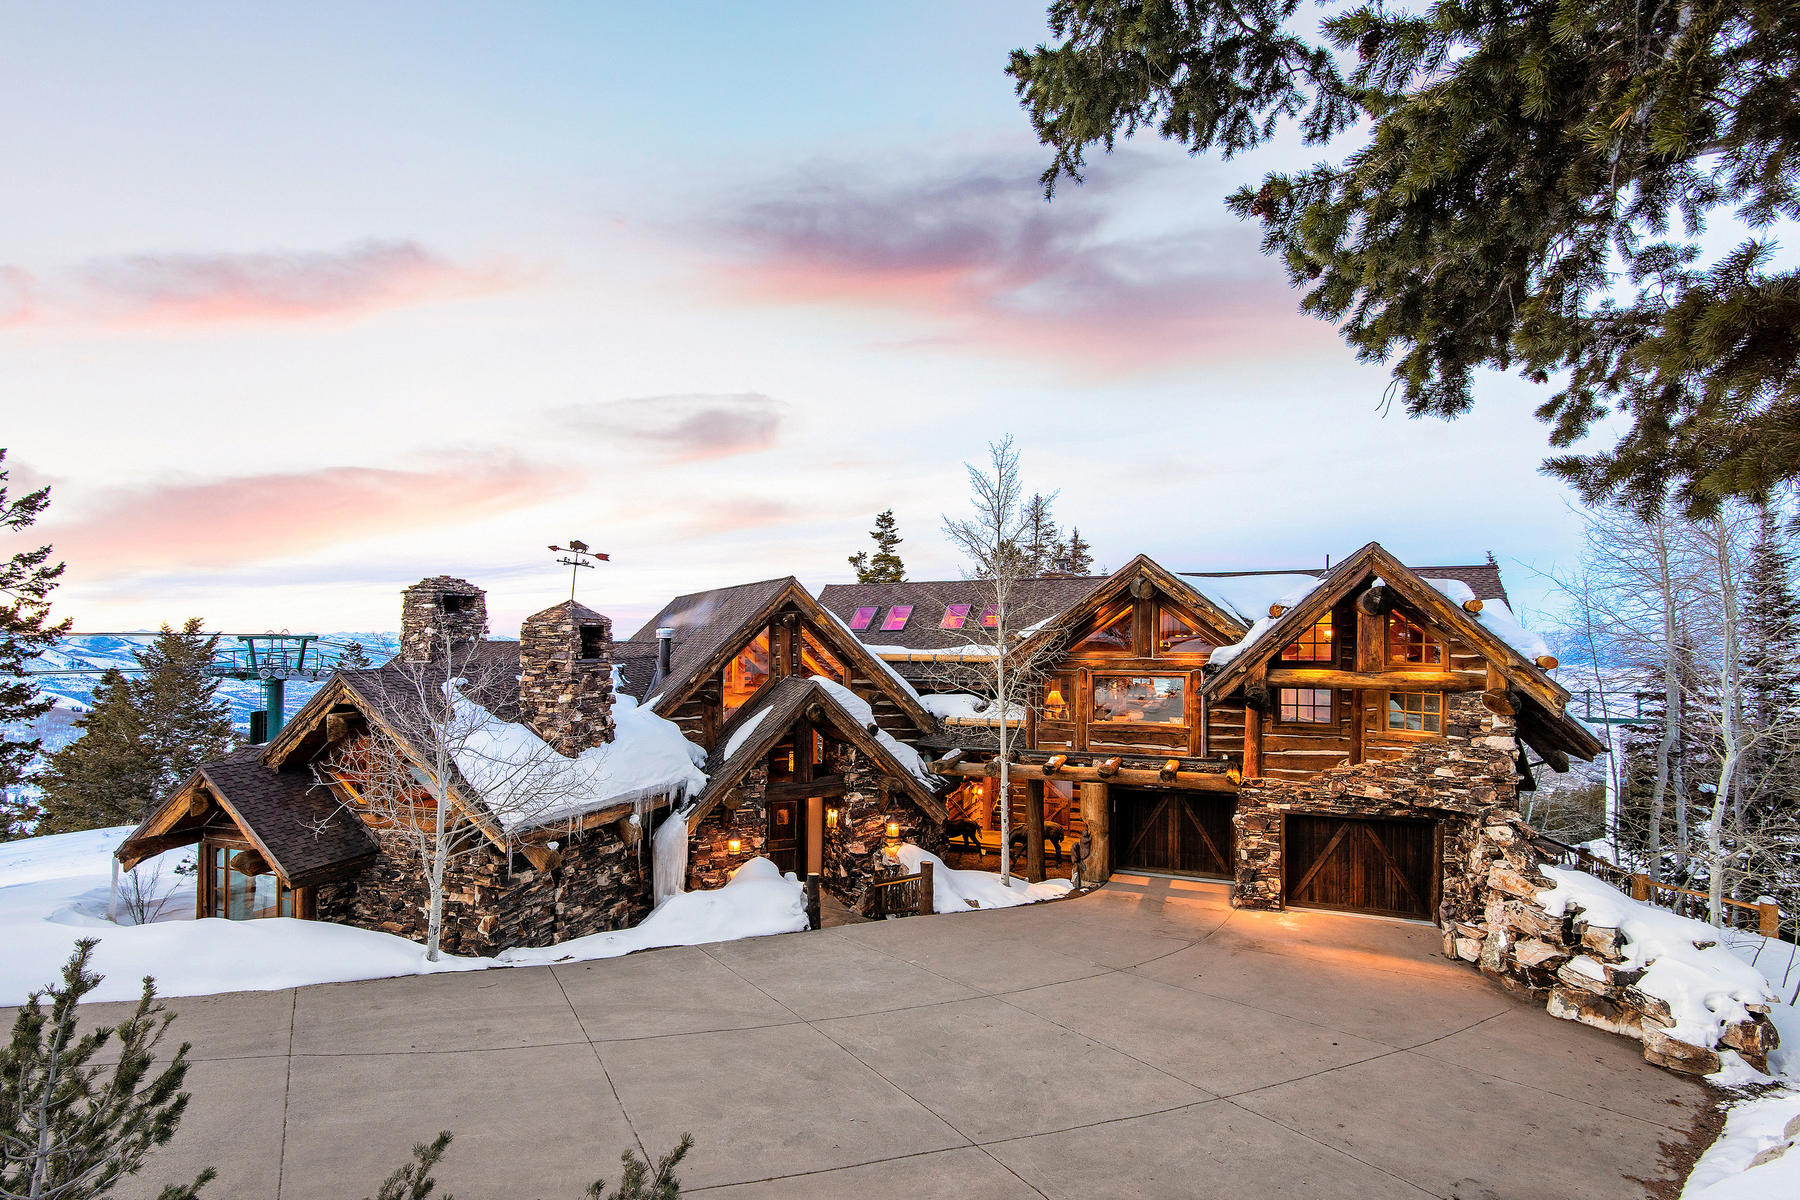 Single Family Home for Sale at Iconic Ski Home With THE Best Views And Ski Access 7841 Falcon Ct Park City, Utah 84060 United States